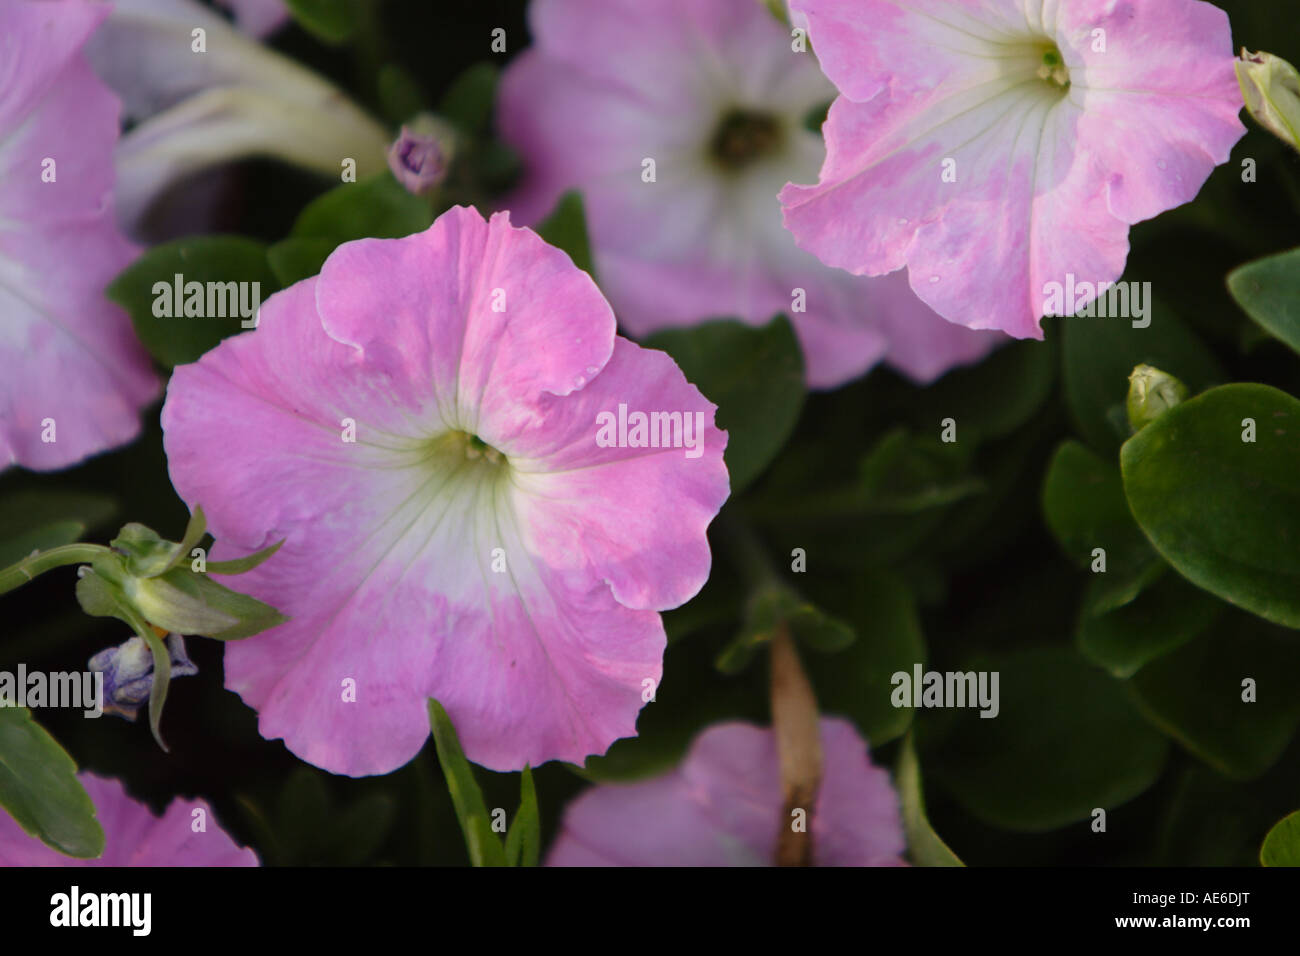 A horizontal image of pink and white Petunia flowers growing in a garden showing green leaves. - Stock Image